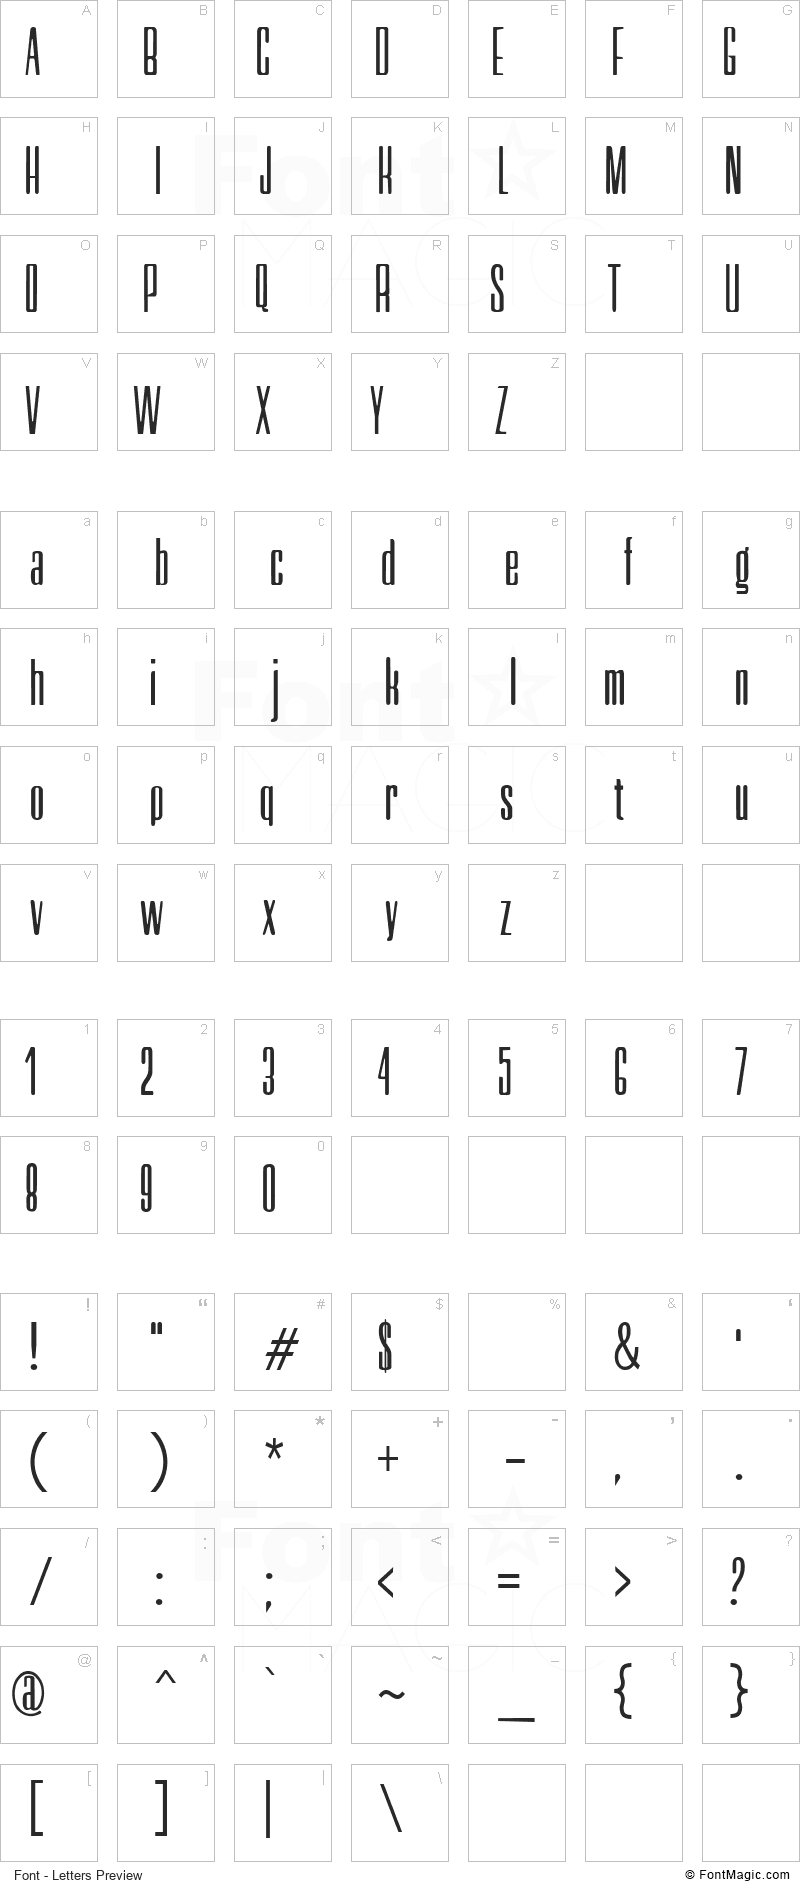 Neretta Font - All Latters Preview Chart